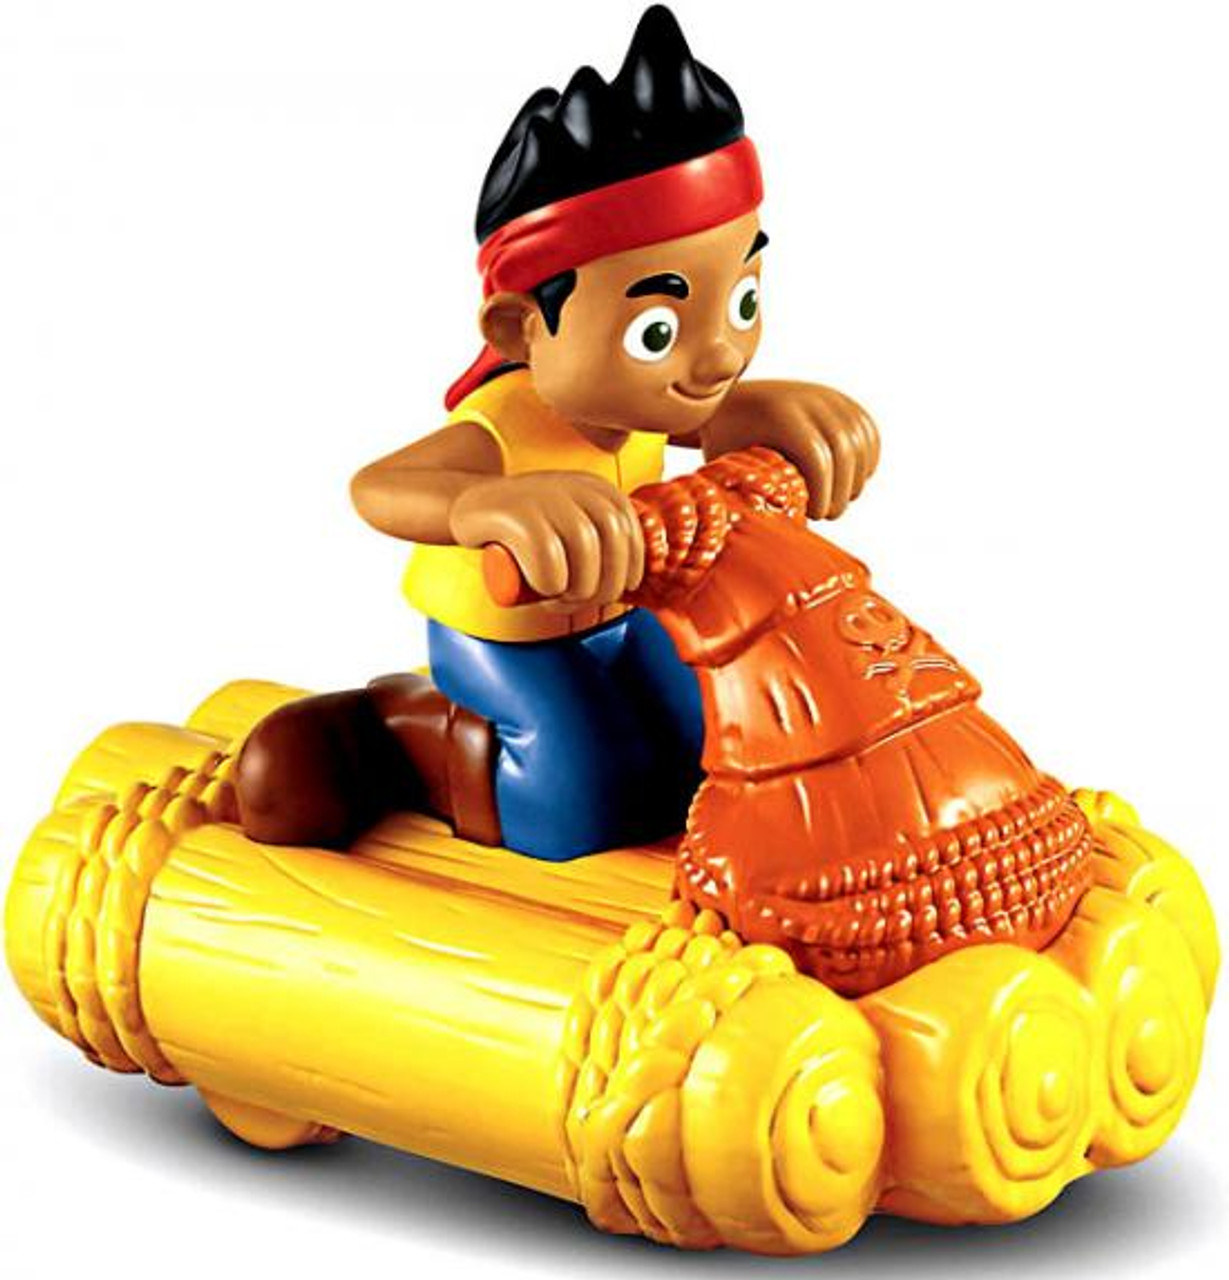 Fisher Price Disney Jake and the Never Land Pirates Pullback & Go Jake's Water Jet Racer Vehicle